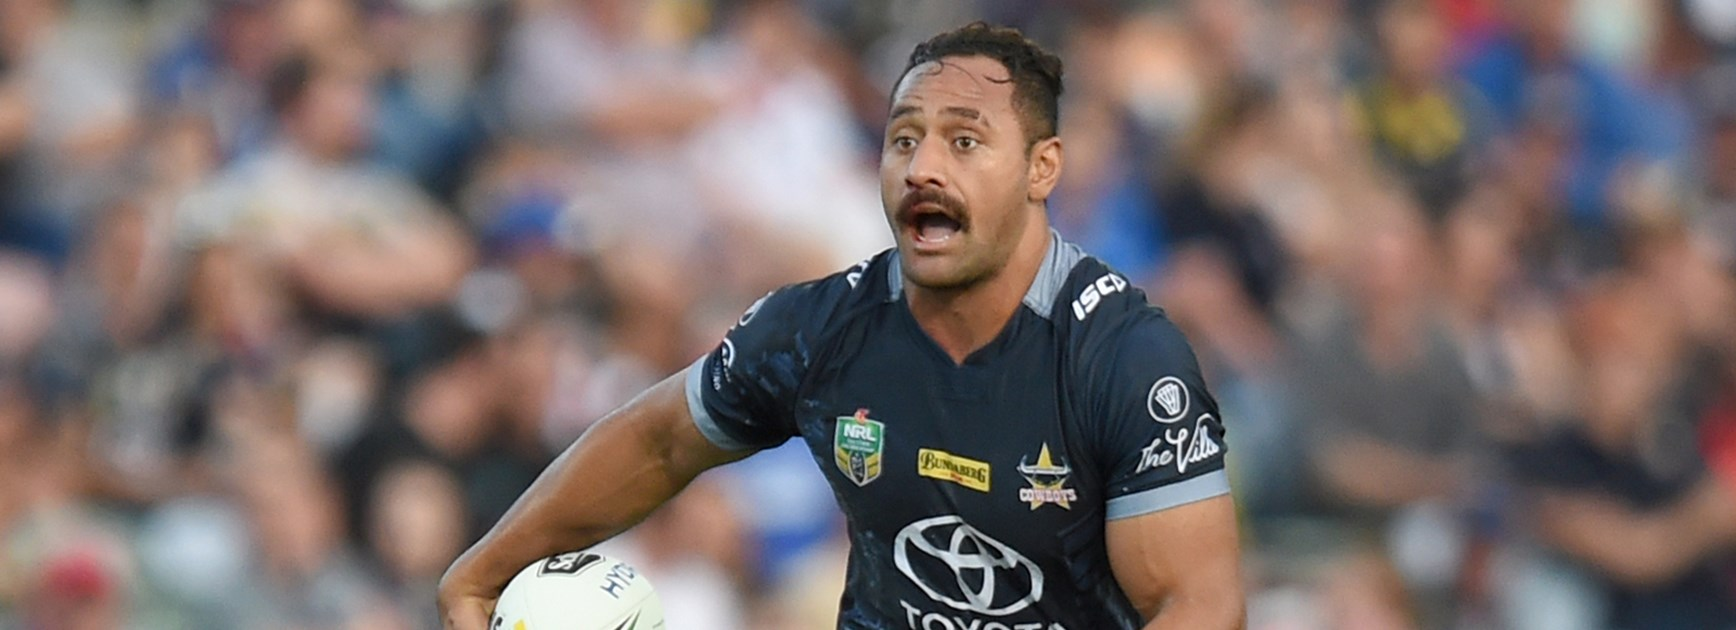 Patrick Kaufusi set to join Storm